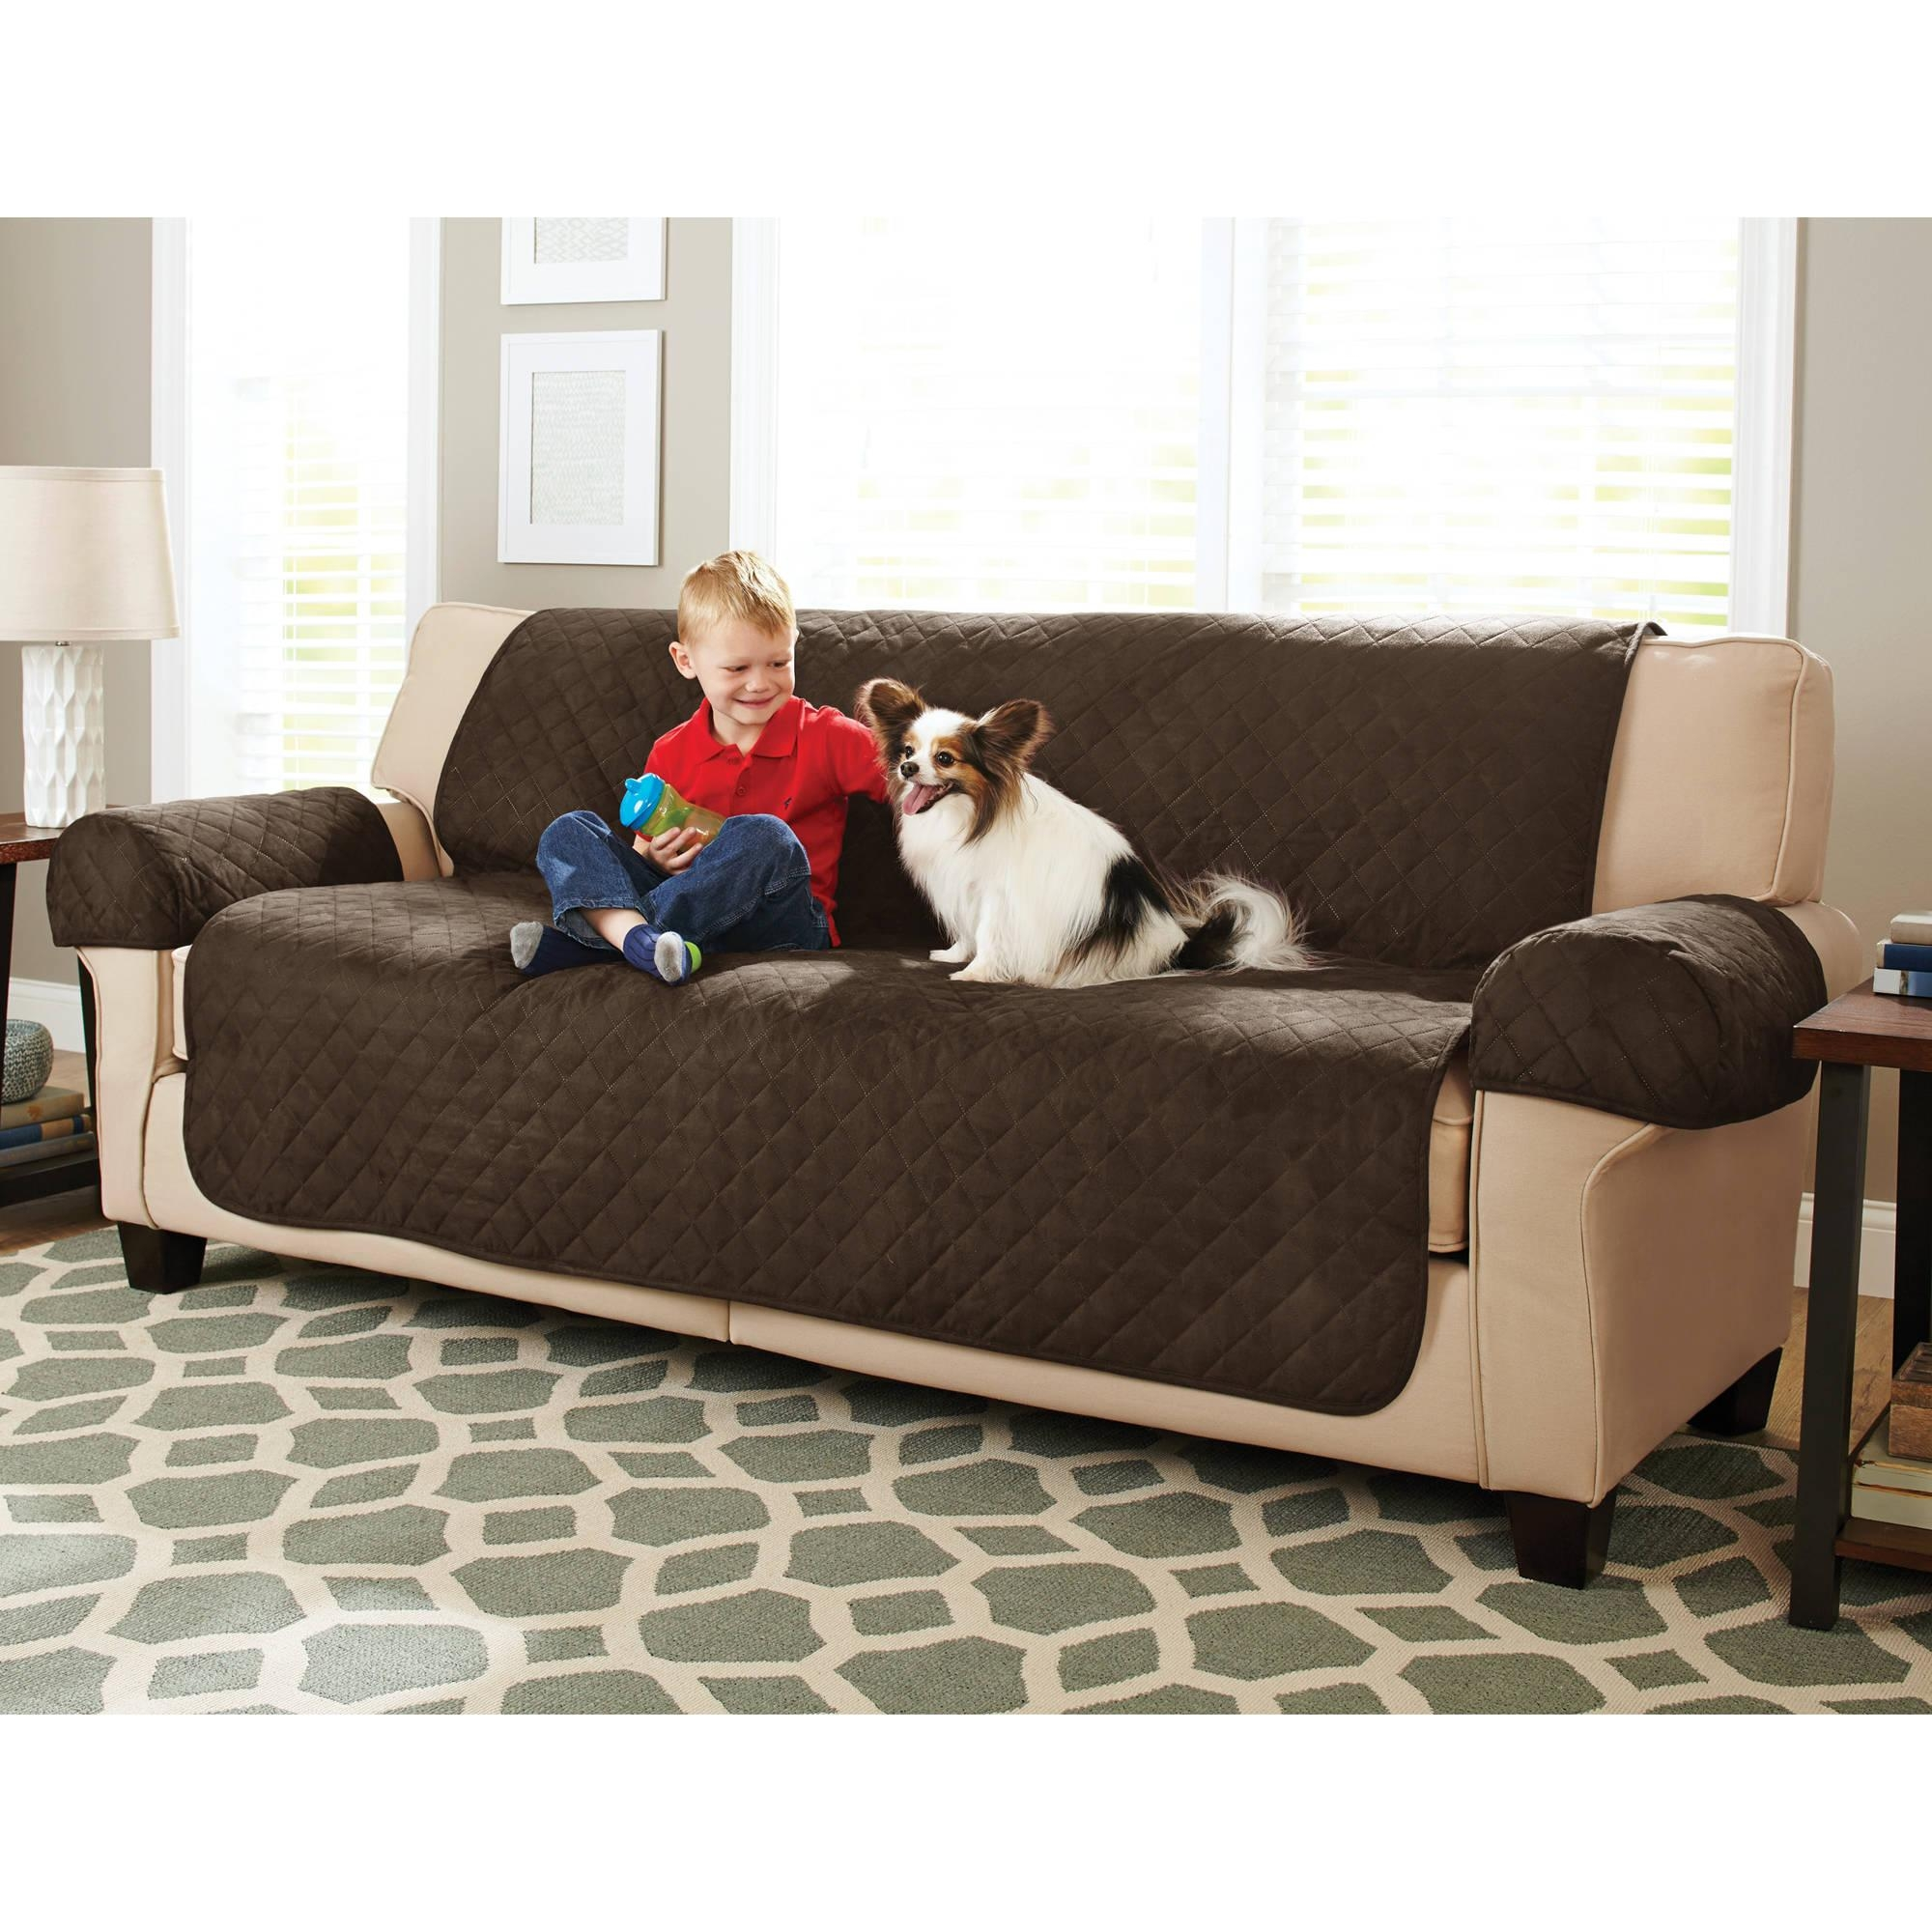 Better Homes And Gardens Waterproof Non Slip Faux Suede Pet With Regard To 3 Piece Slipcover Sets (Image 10 of 20)